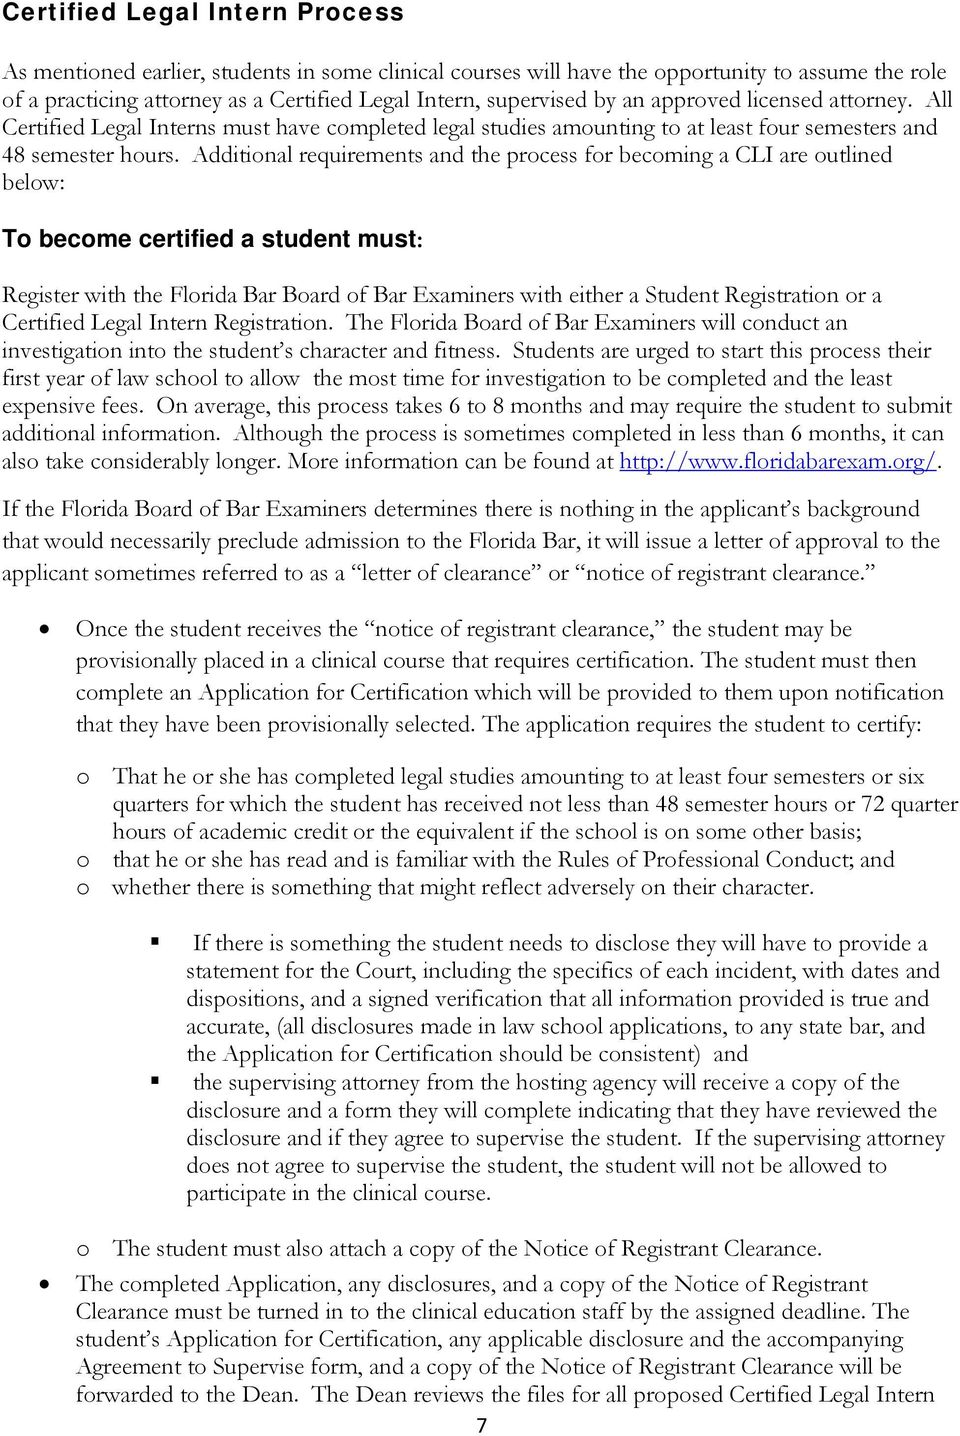 Additional requirements and the process for becoming a CLI are outlined below: To become certified a student must: Register with the Florida Bar Board of Bar Examiners with either a Student